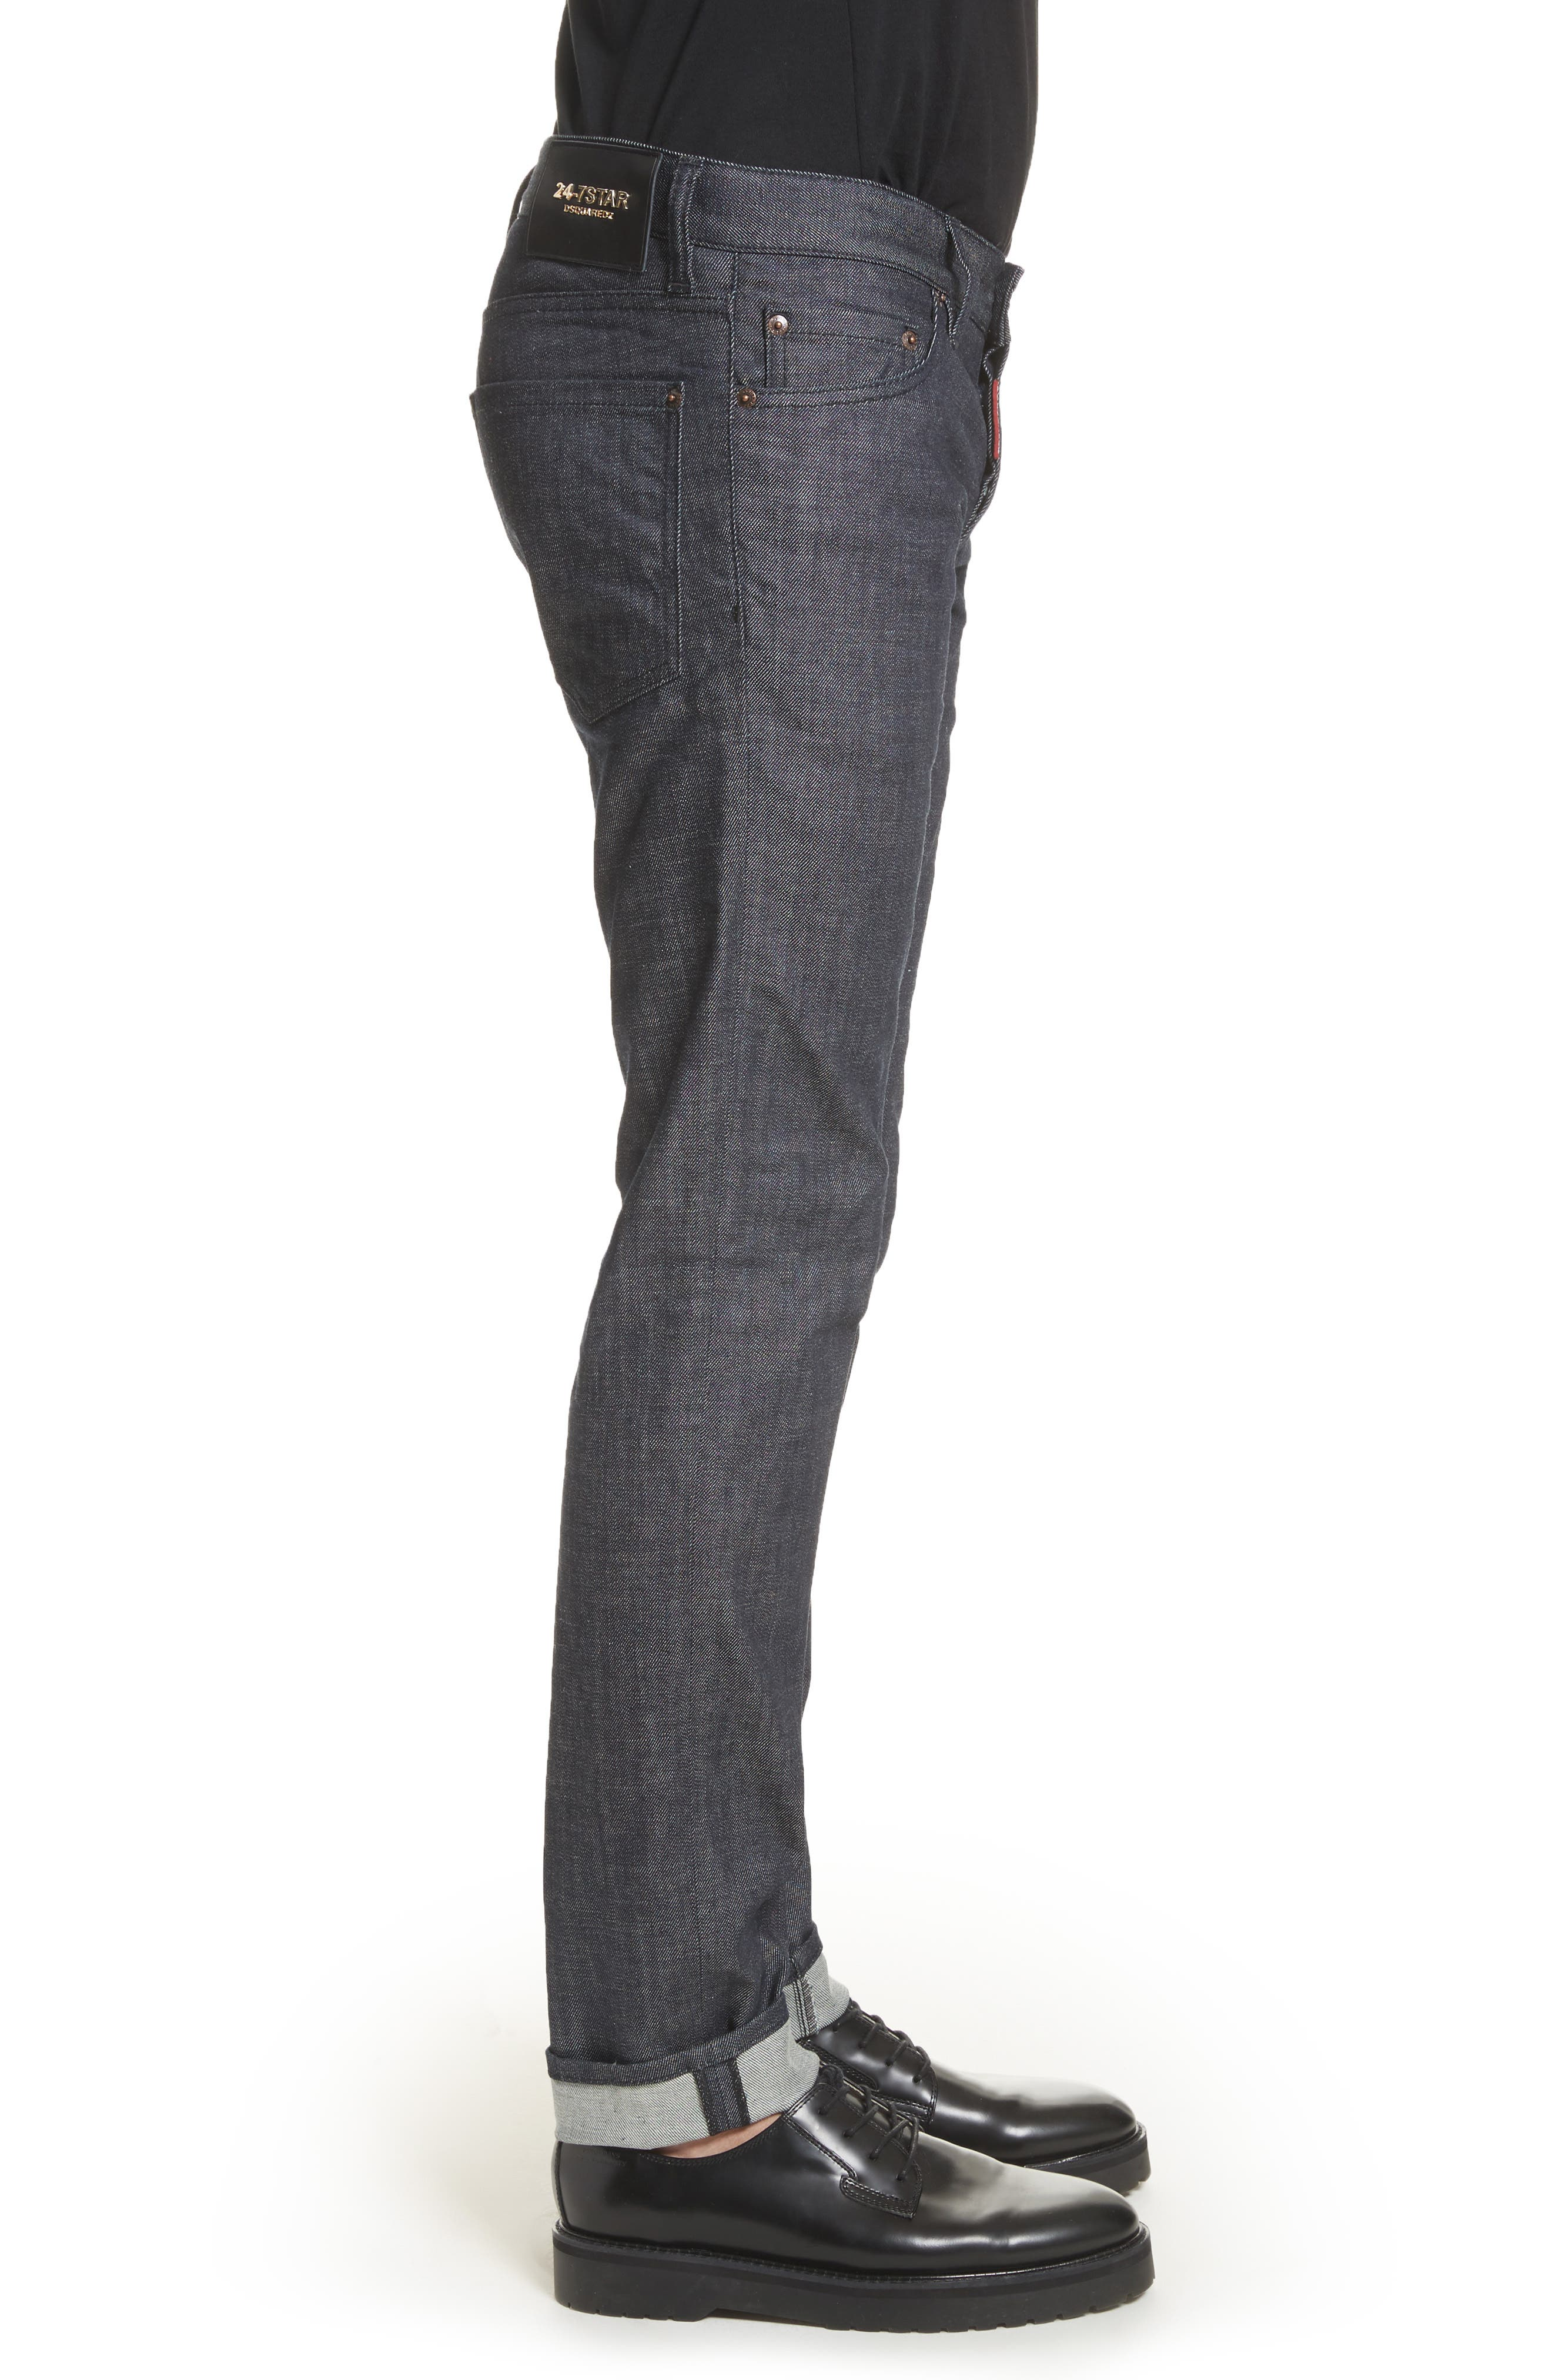 24-7Star Slim Fit Jeans,                             Alternate thumbnail 3, color,                             NAVY/BLUE